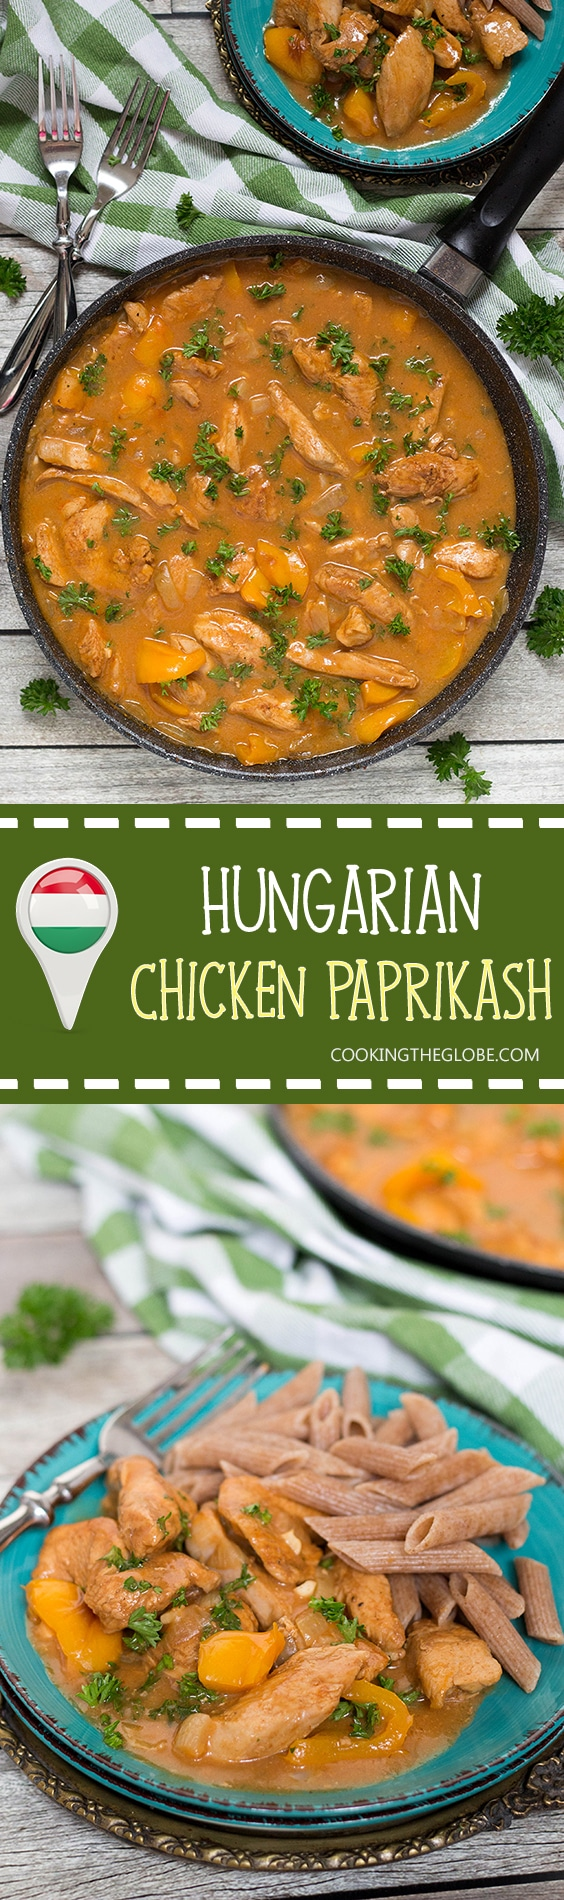 Hungarian Chicken Paprikash is basically a paprika flavored chicken. This dish is really easy to make and makes a fabulous weeknight dinner! | cookingtheglobe.com